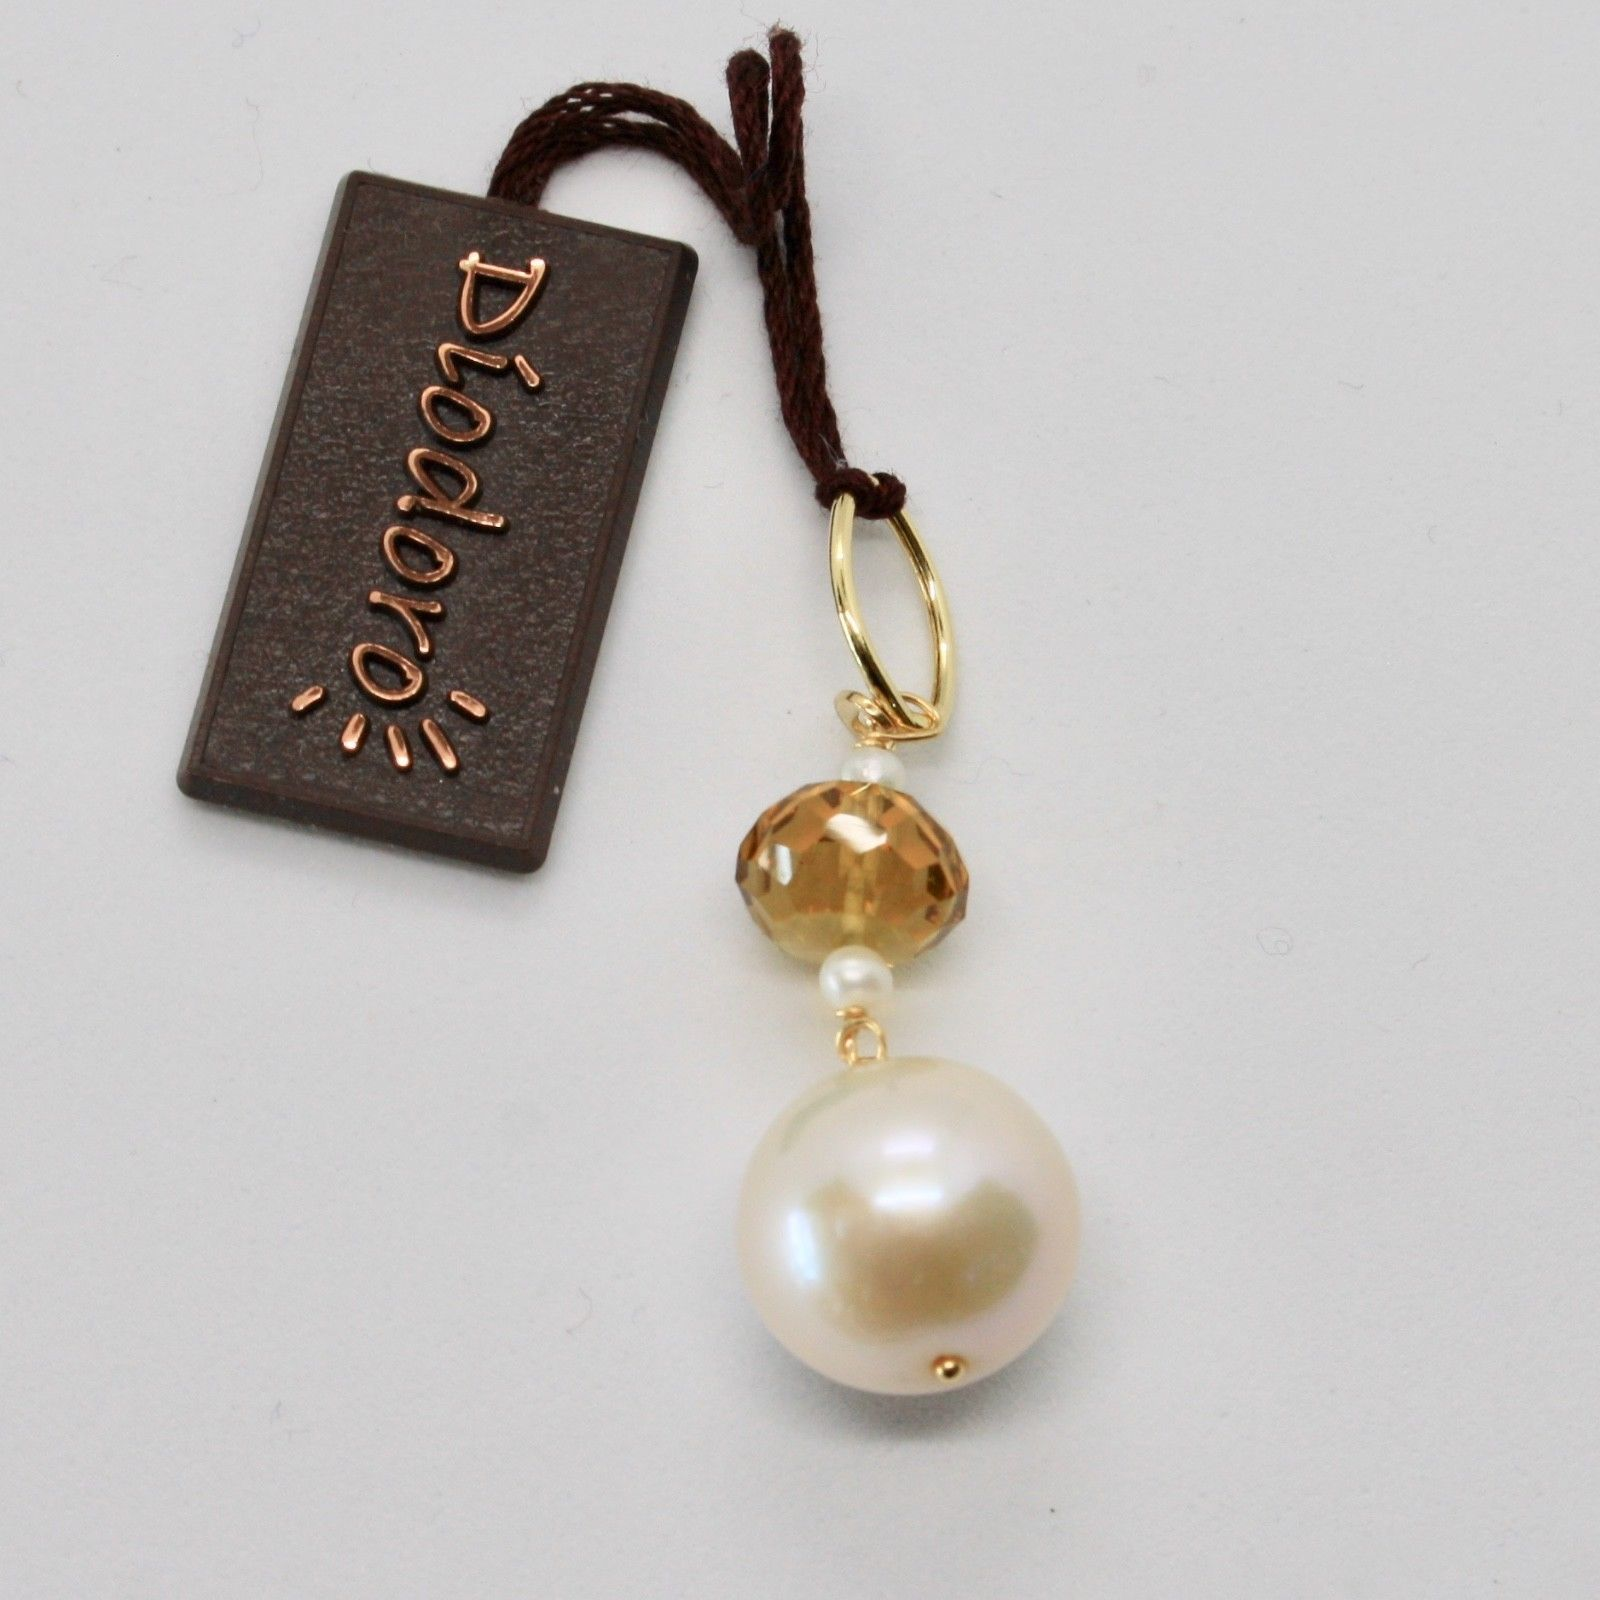 PENDANT YELLOW GOLD 18KT 750 WITH PEARL WHITE FRESH WATER AND QUARTZ BEER